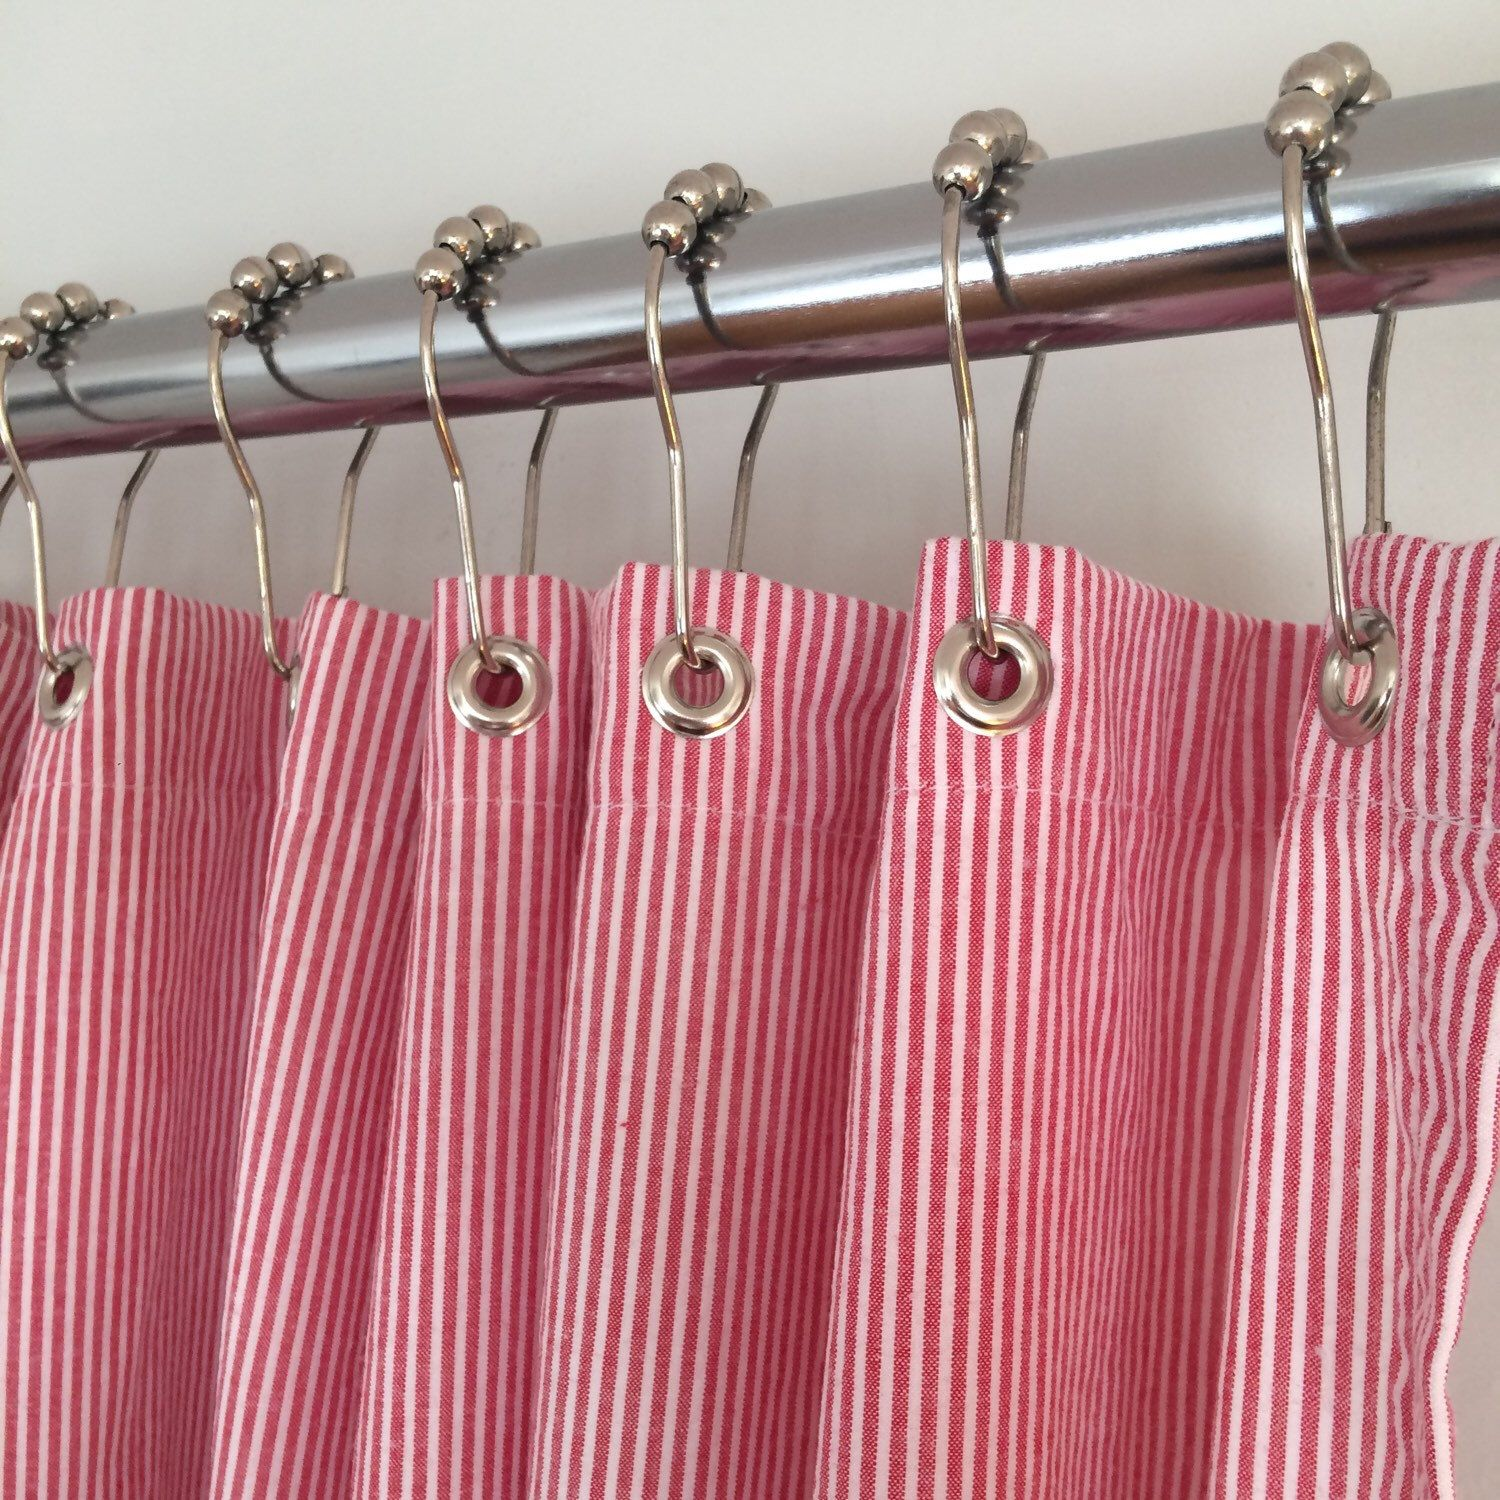 Seersucker Shower Curtains #madeintheusa Exclusively By Southern Ticking  Co. Are An Instant Bathroom Update